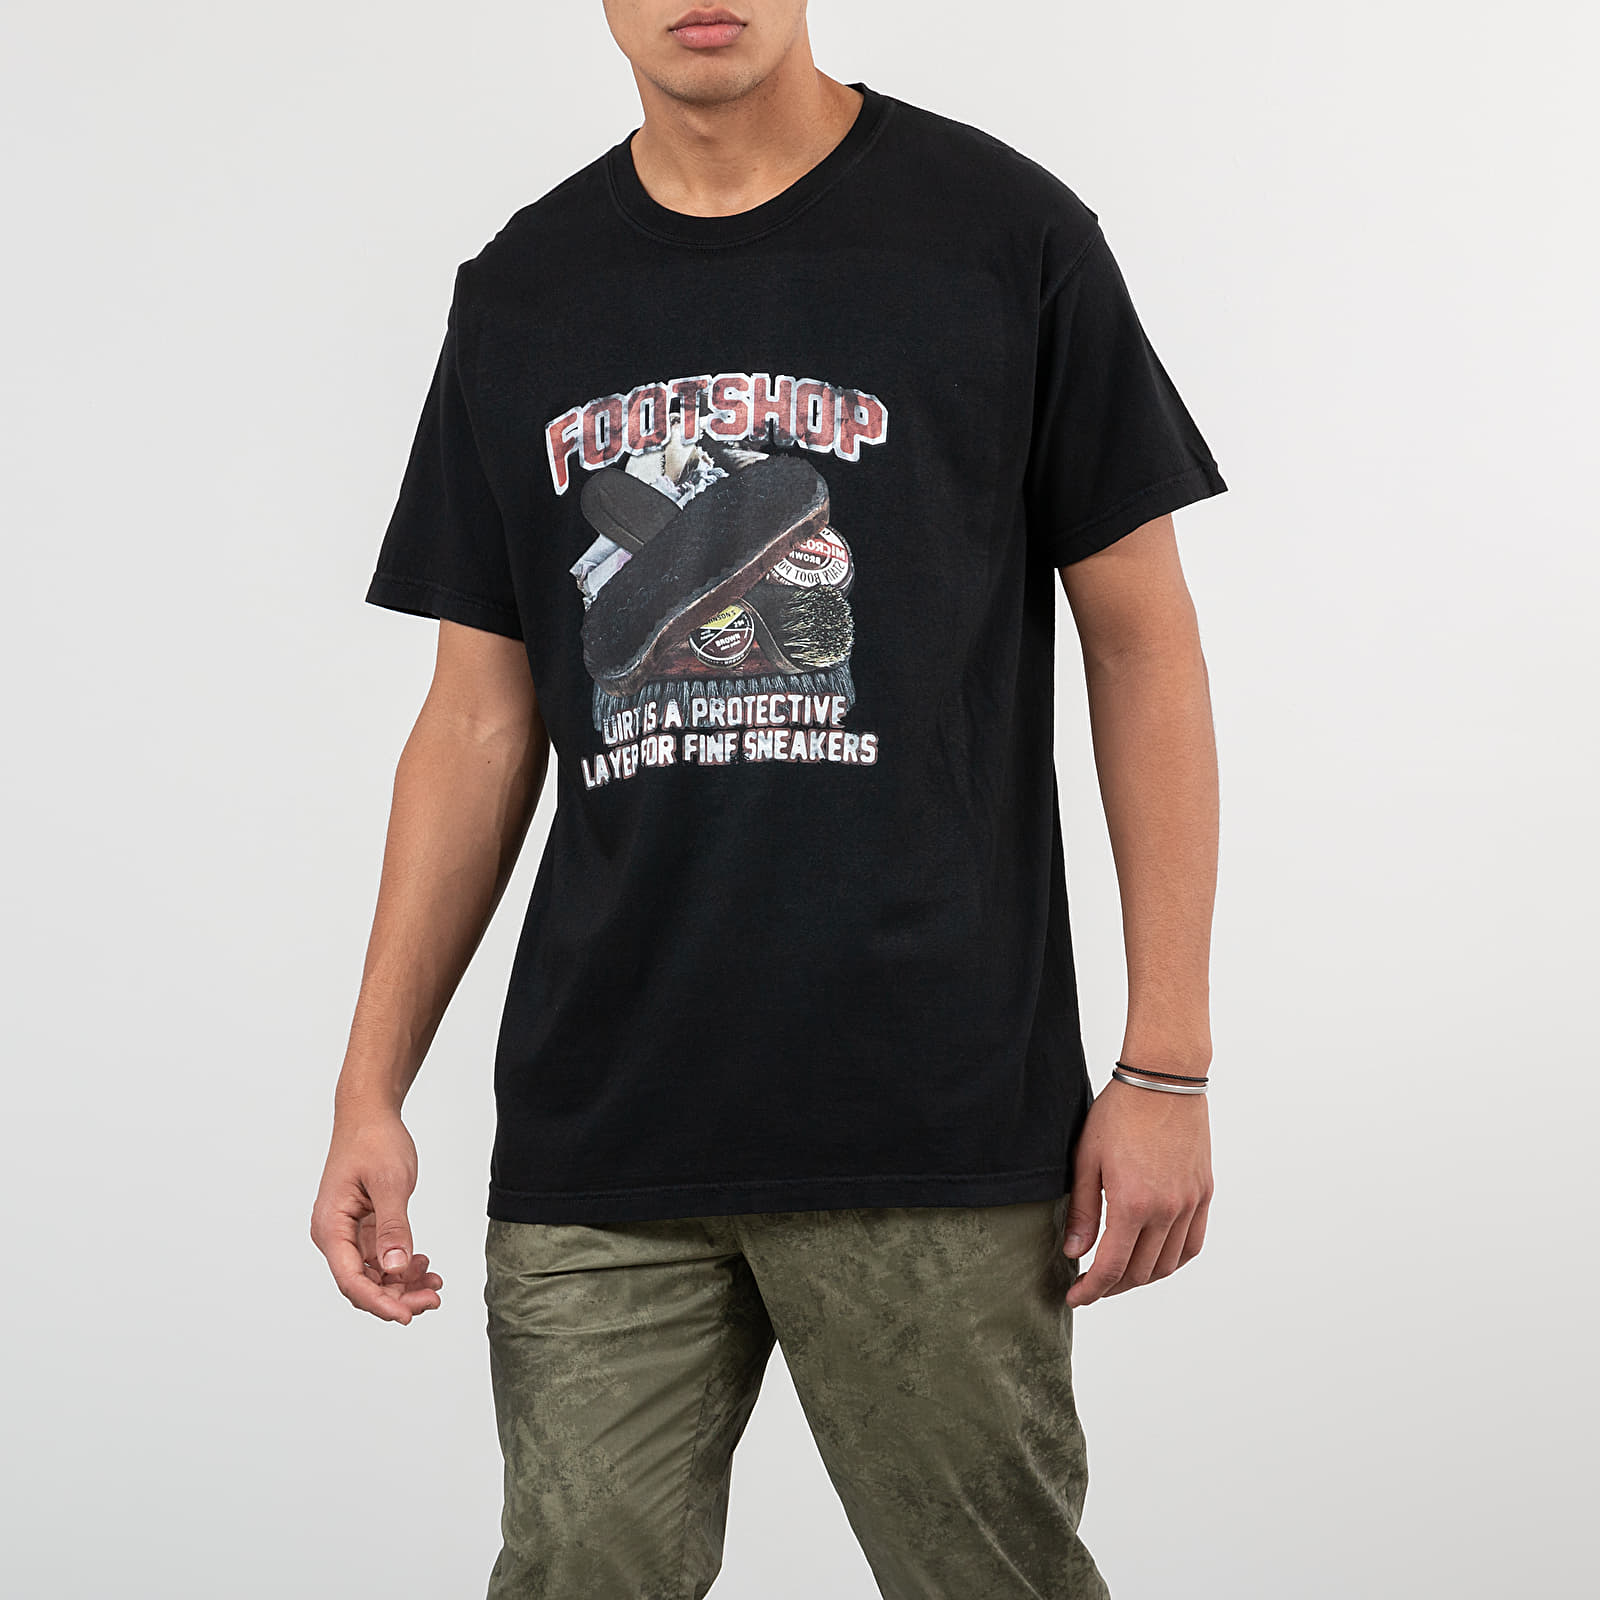 T-Shirts Footshop Cleaning Tee Black